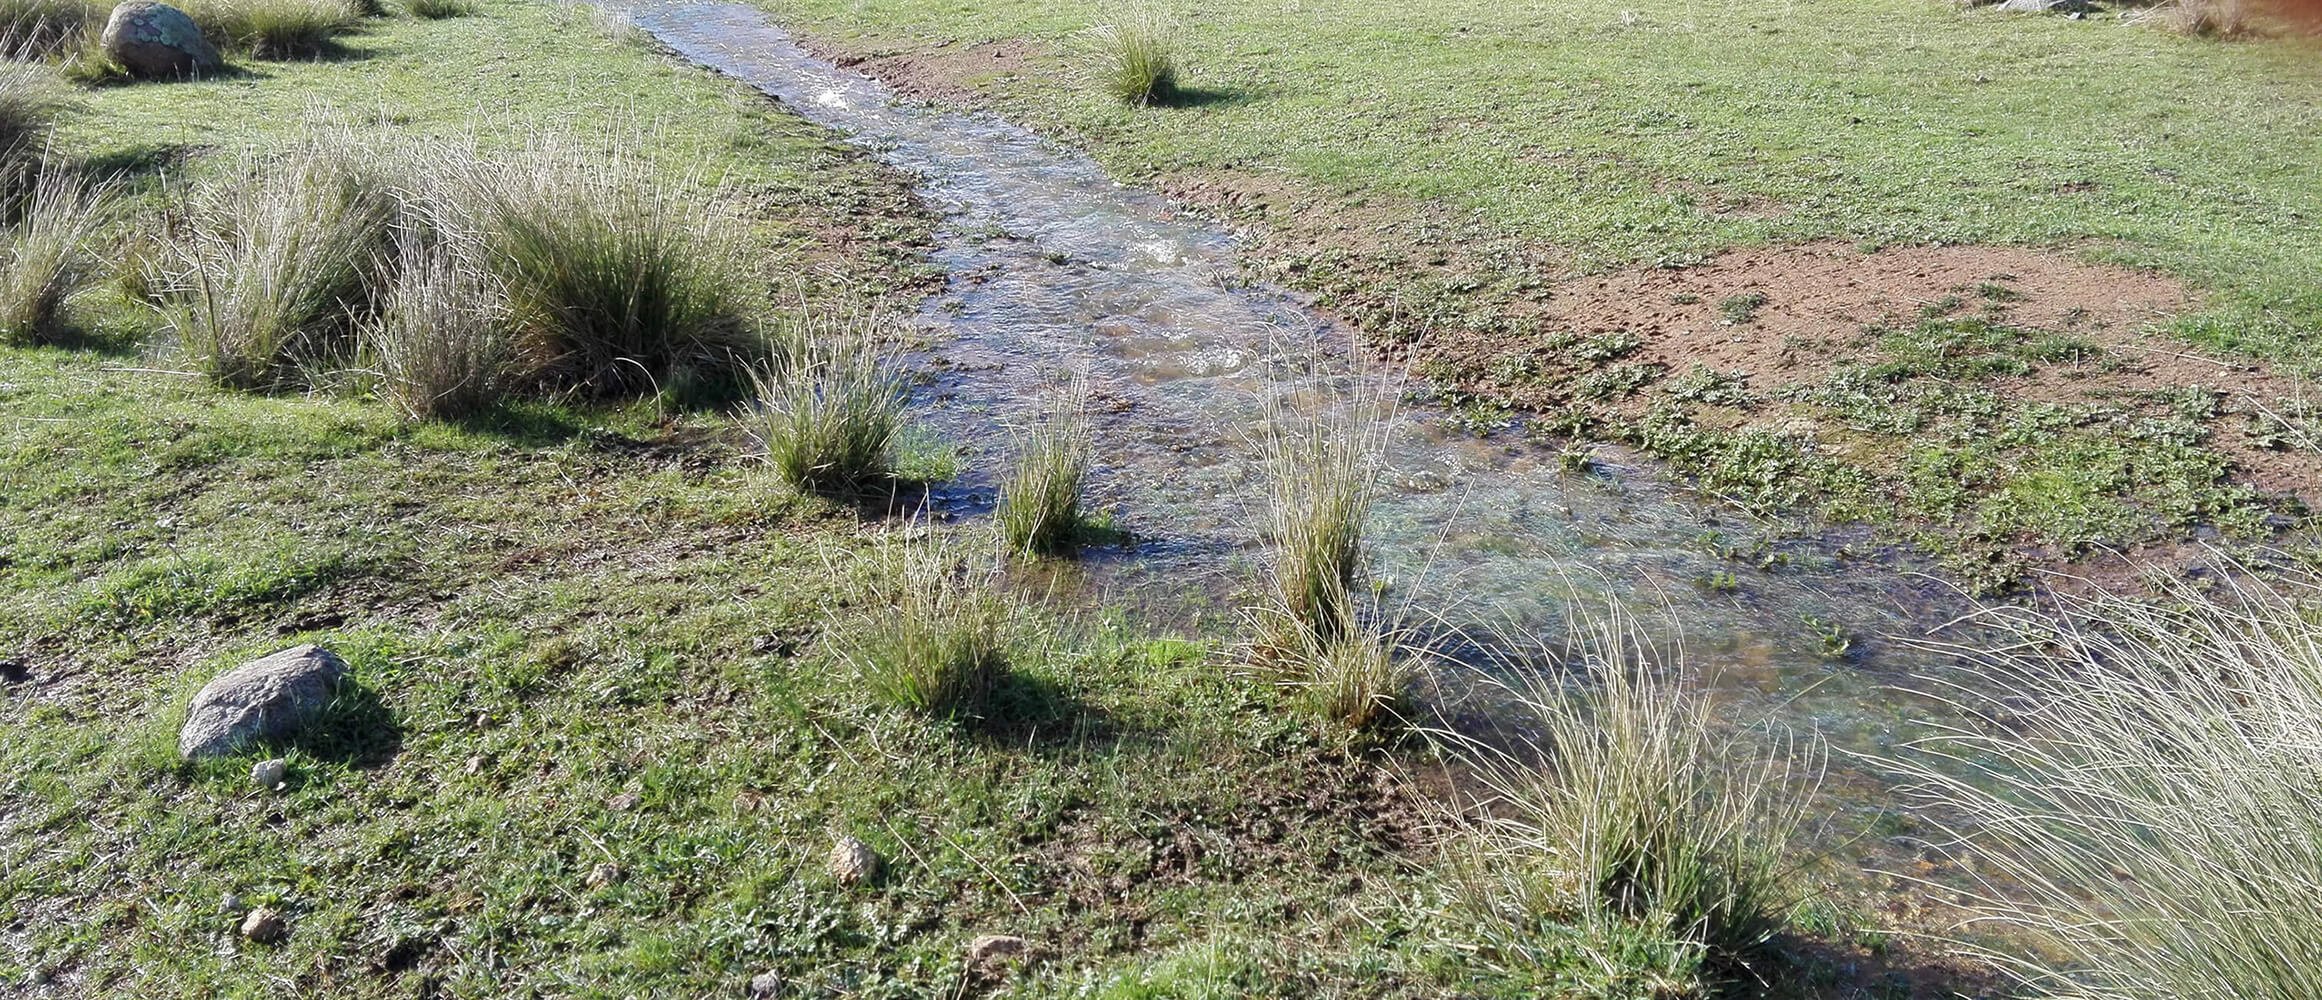 Uniting Farmers and Environmentalists through the Water Cycle